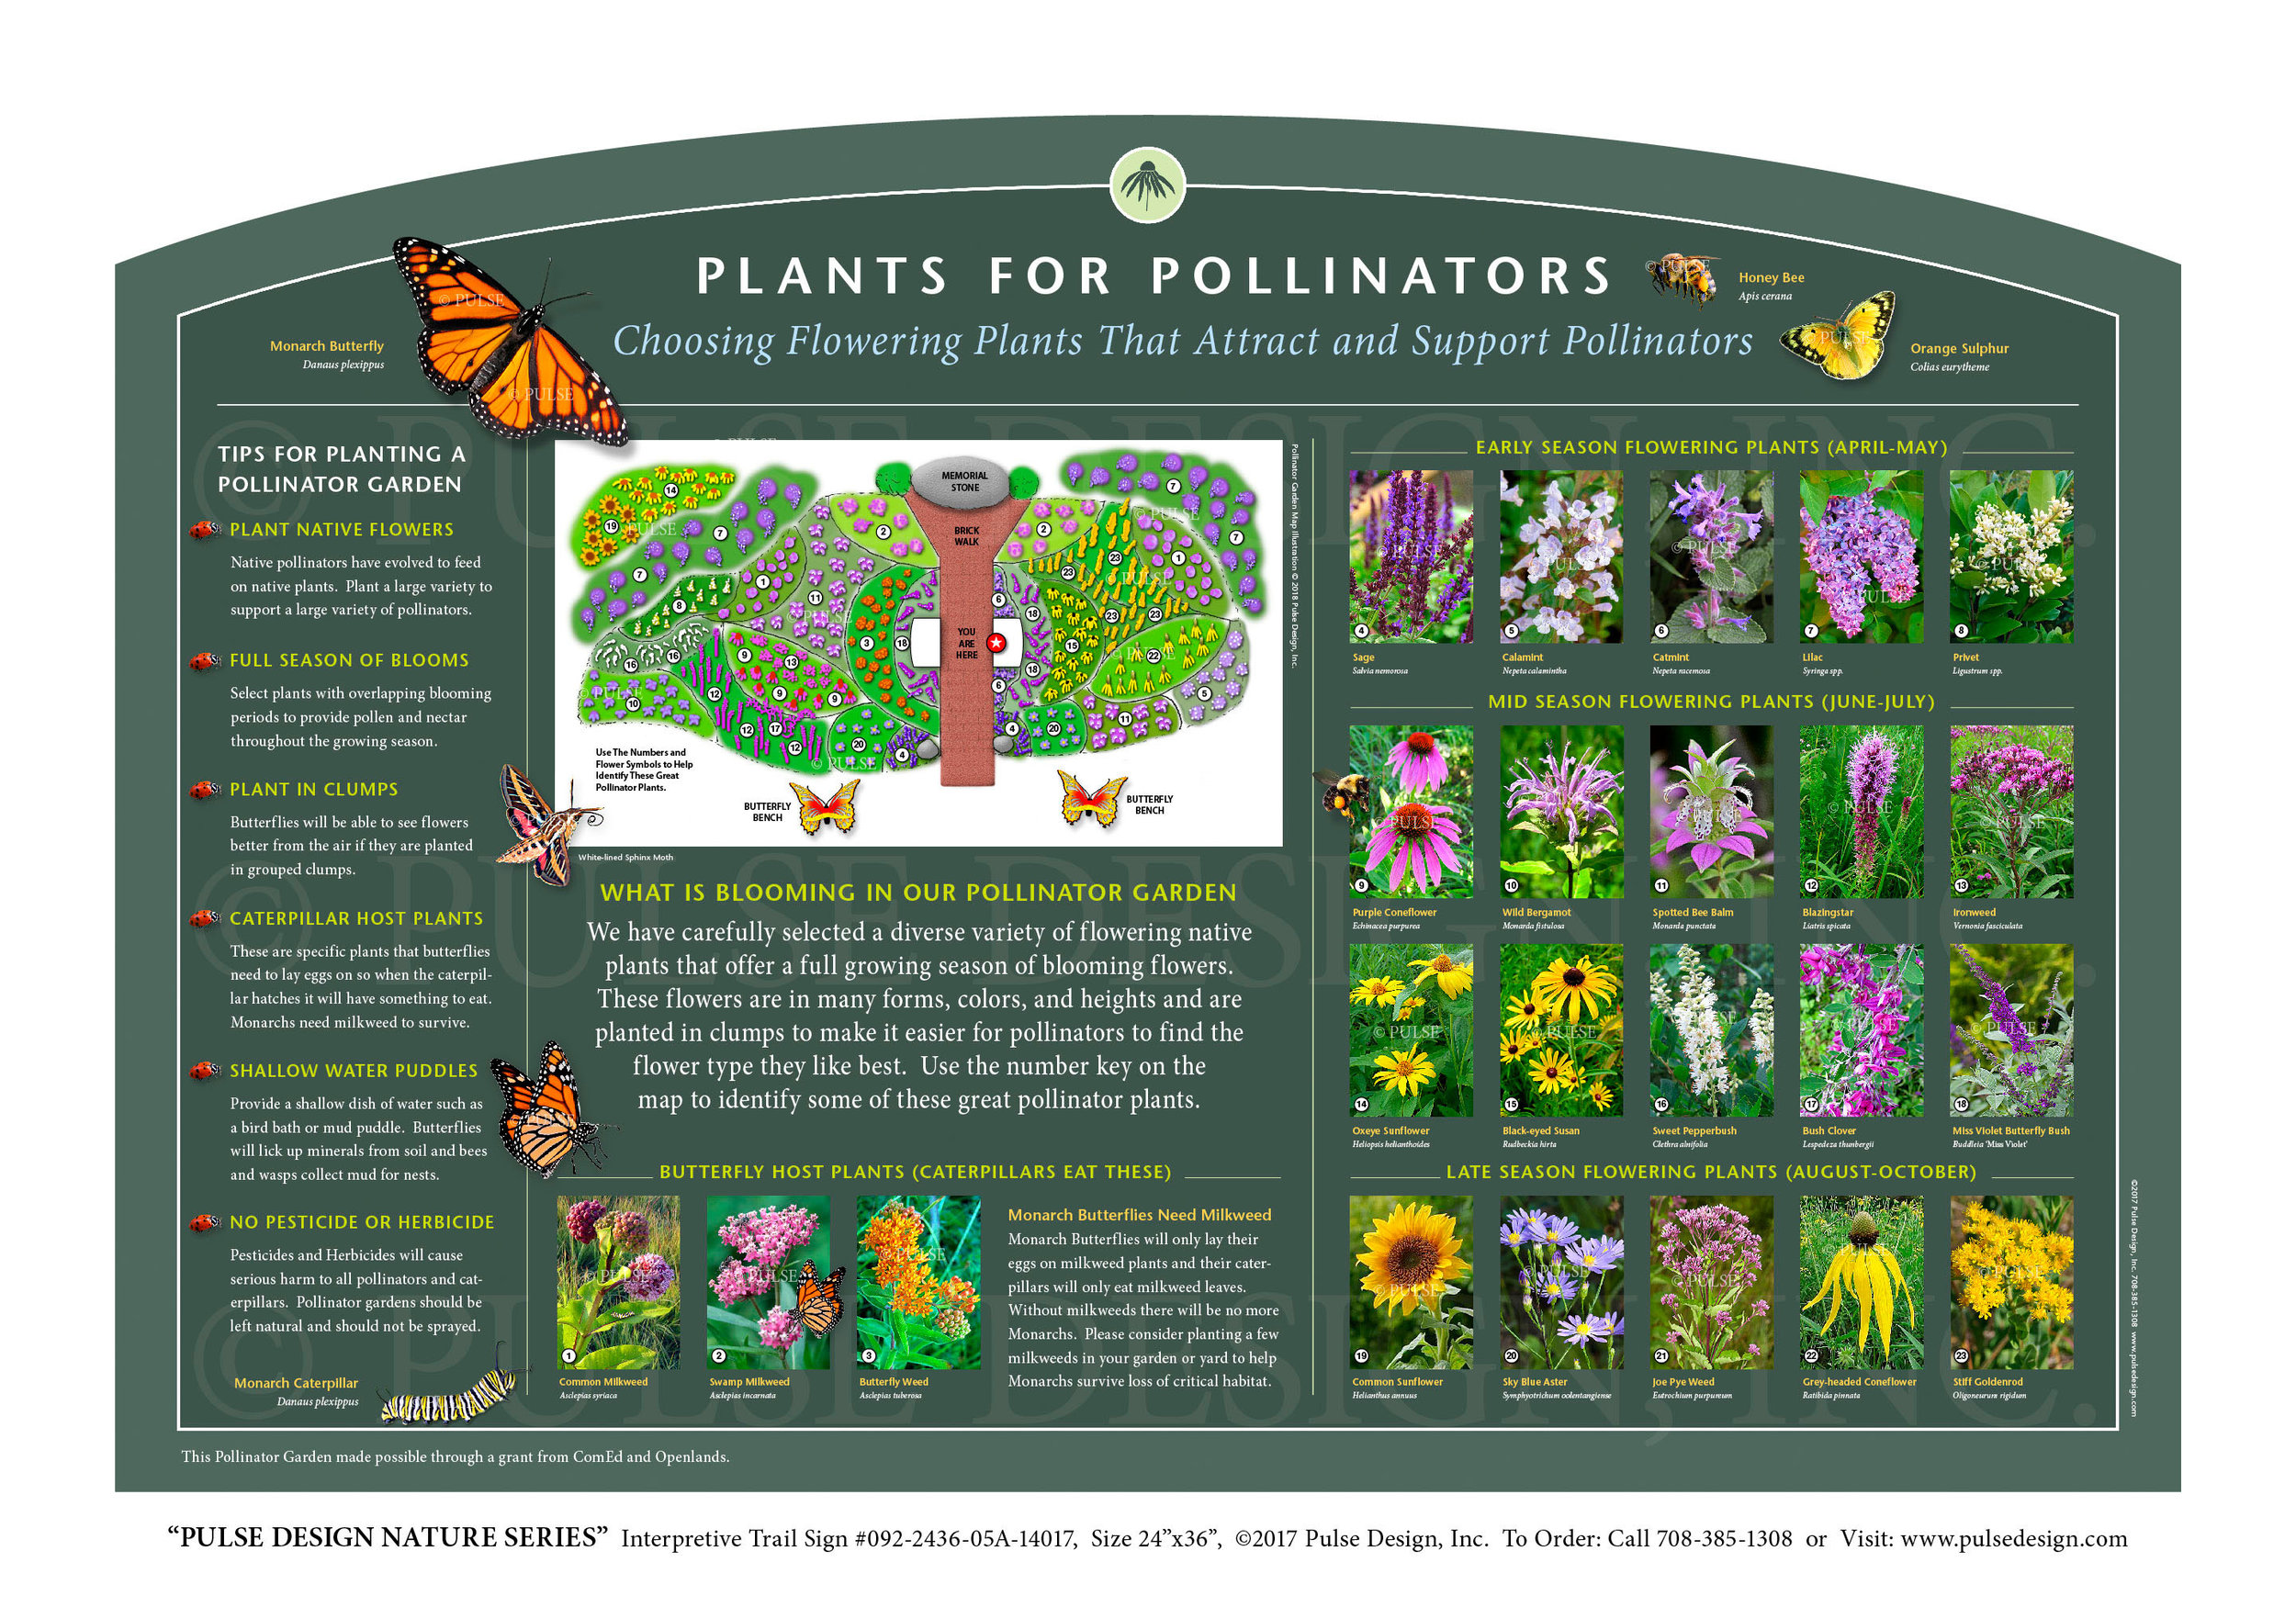 """Pulse Design provides Outdoor Interpretive Nature Trail Signs, Environmental Education Exhibits, Graphic Display Panels,Wayfinding Signage and Monuments, focused on Wildlife and Habitat throughout the United States. The  PULSE DESIGN NATURE SERIES is a beautiful, """"Ready-to-Order"""" and """"Customizable"""" series of interpretive trail signs that cover many common nature subjects. See more signs from our  INSECT & POLLINATOR SIGN SERIES  or  PRAIRIE & GRASSLANDS HABITAT SIGN SERIES ."""